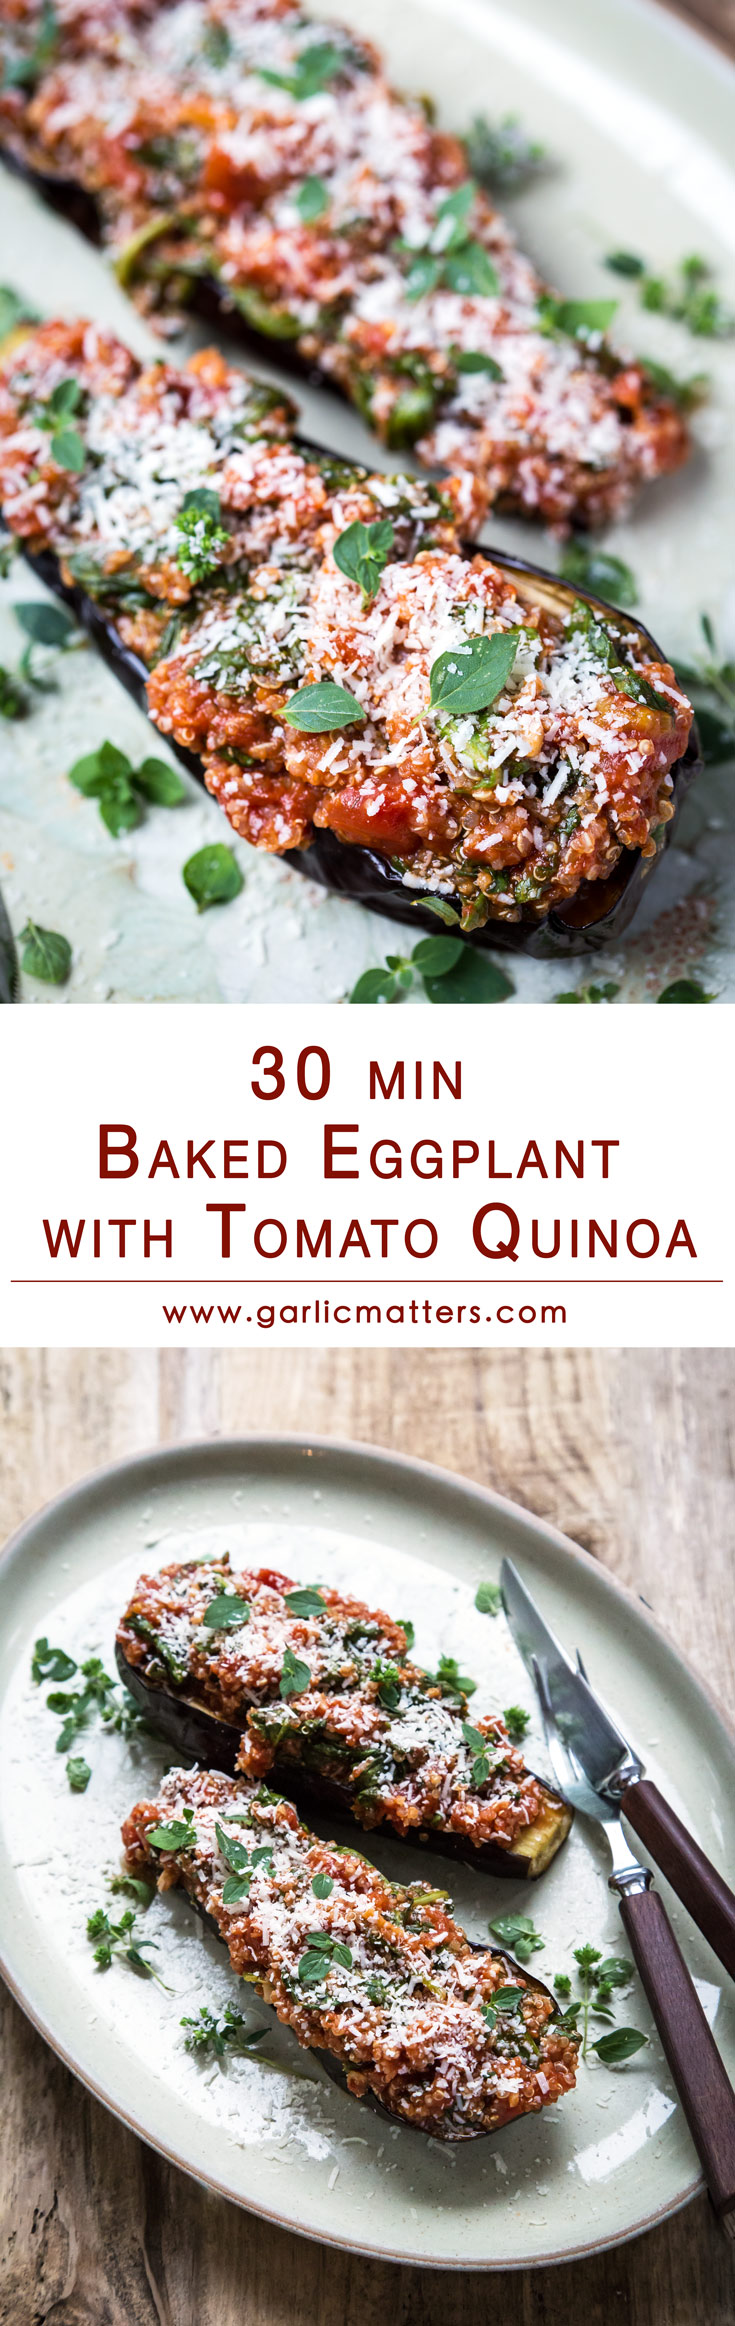 30 min Baked Eggplant with Tomato Quinoa has just become my new vegetarian favourite on our weekly menu rotation. This surprisingly light dish is perfectly satisfying even as a one course meal. High nutritional values are also a fantastic bonus. Brilliant, easy, gluten free recipe idea for leftover quinoa.